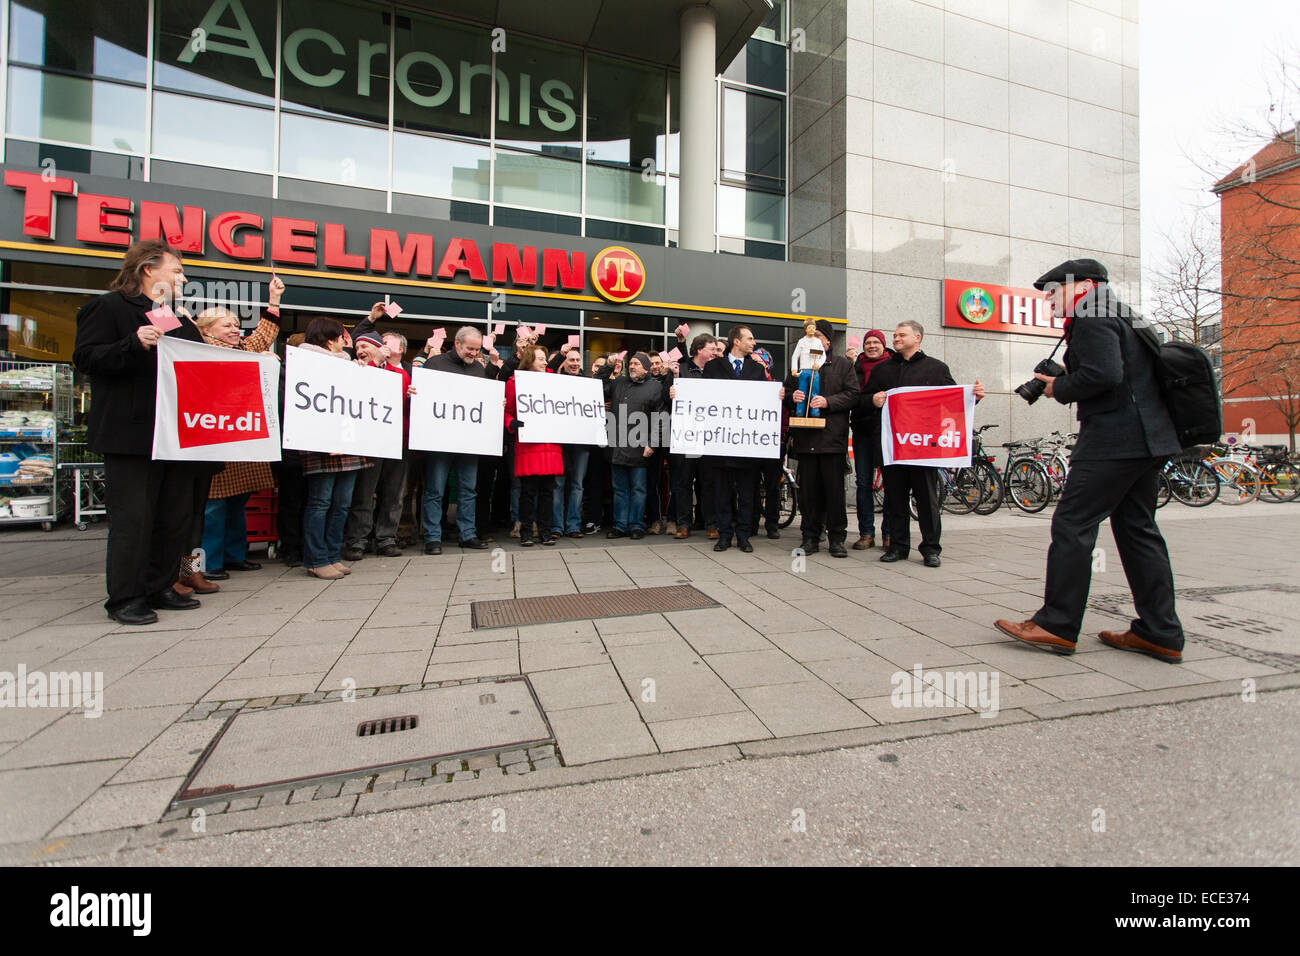 Verdi union members demonstrating outside Tengelmann supermarket in Munich, Germany, hoping to protect their jobs - Stock Image